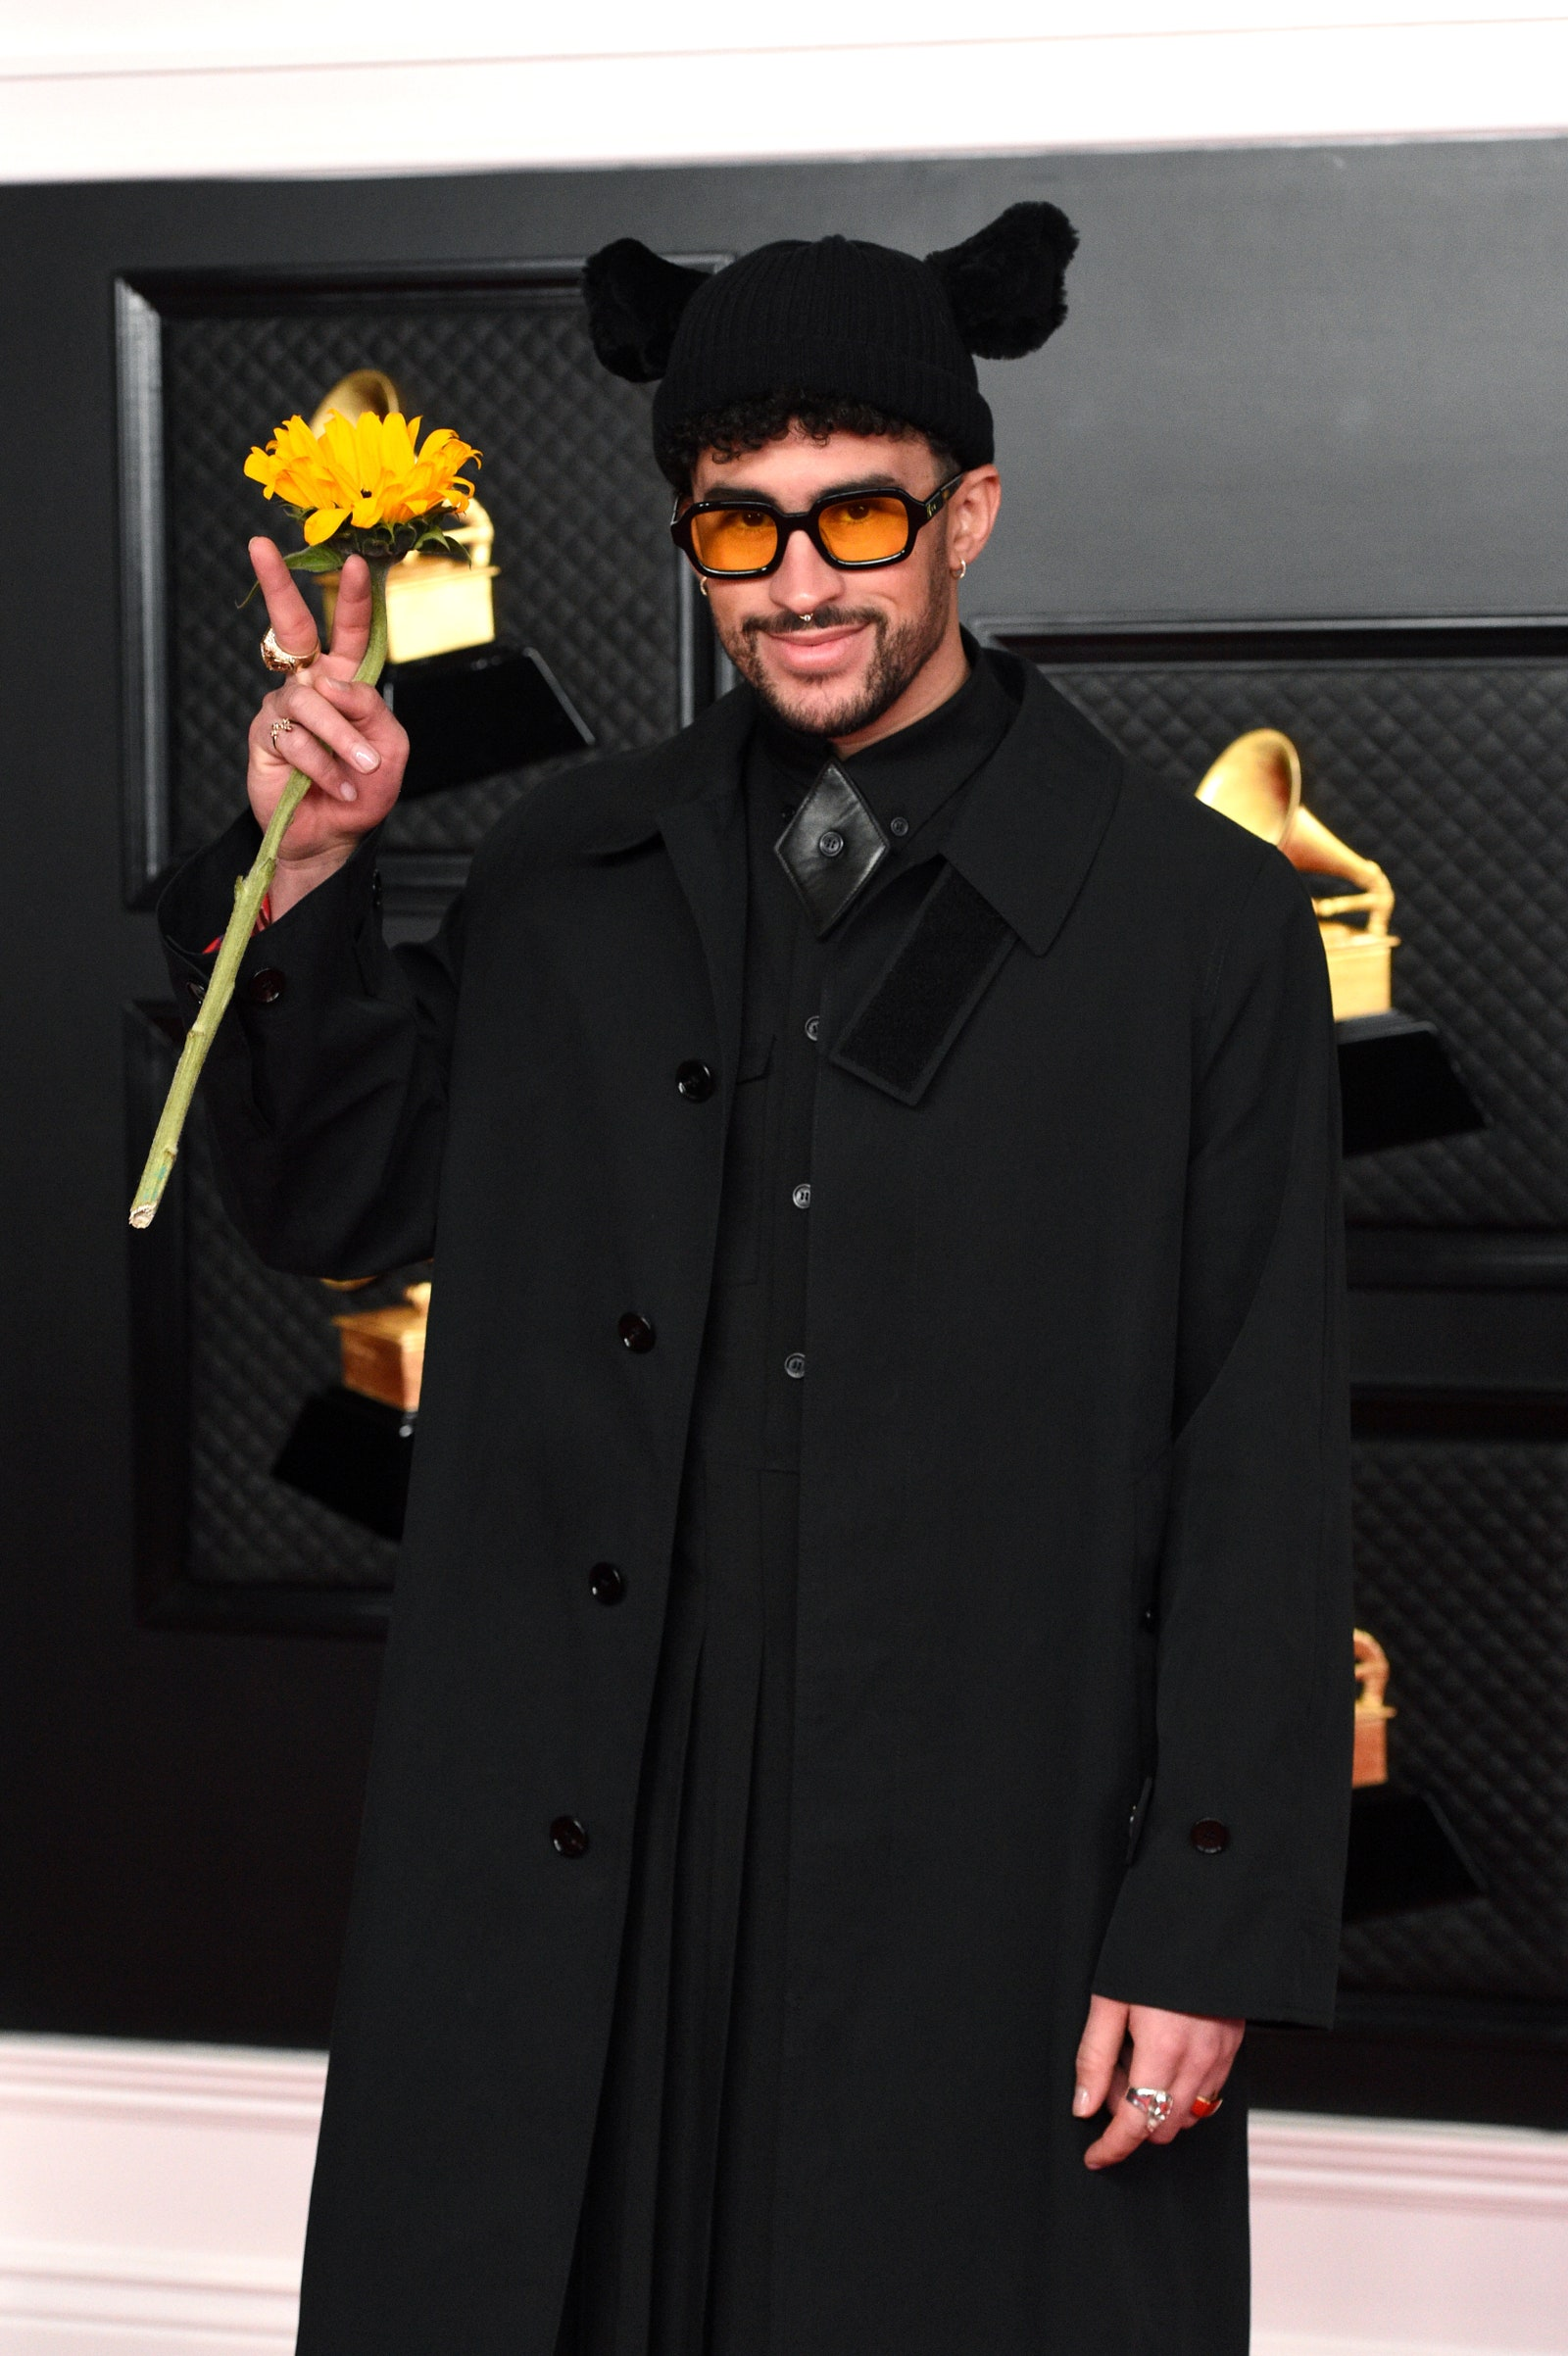 Bad Bunny holding a sunflower and posing on the carpet at the Grammys 2021.